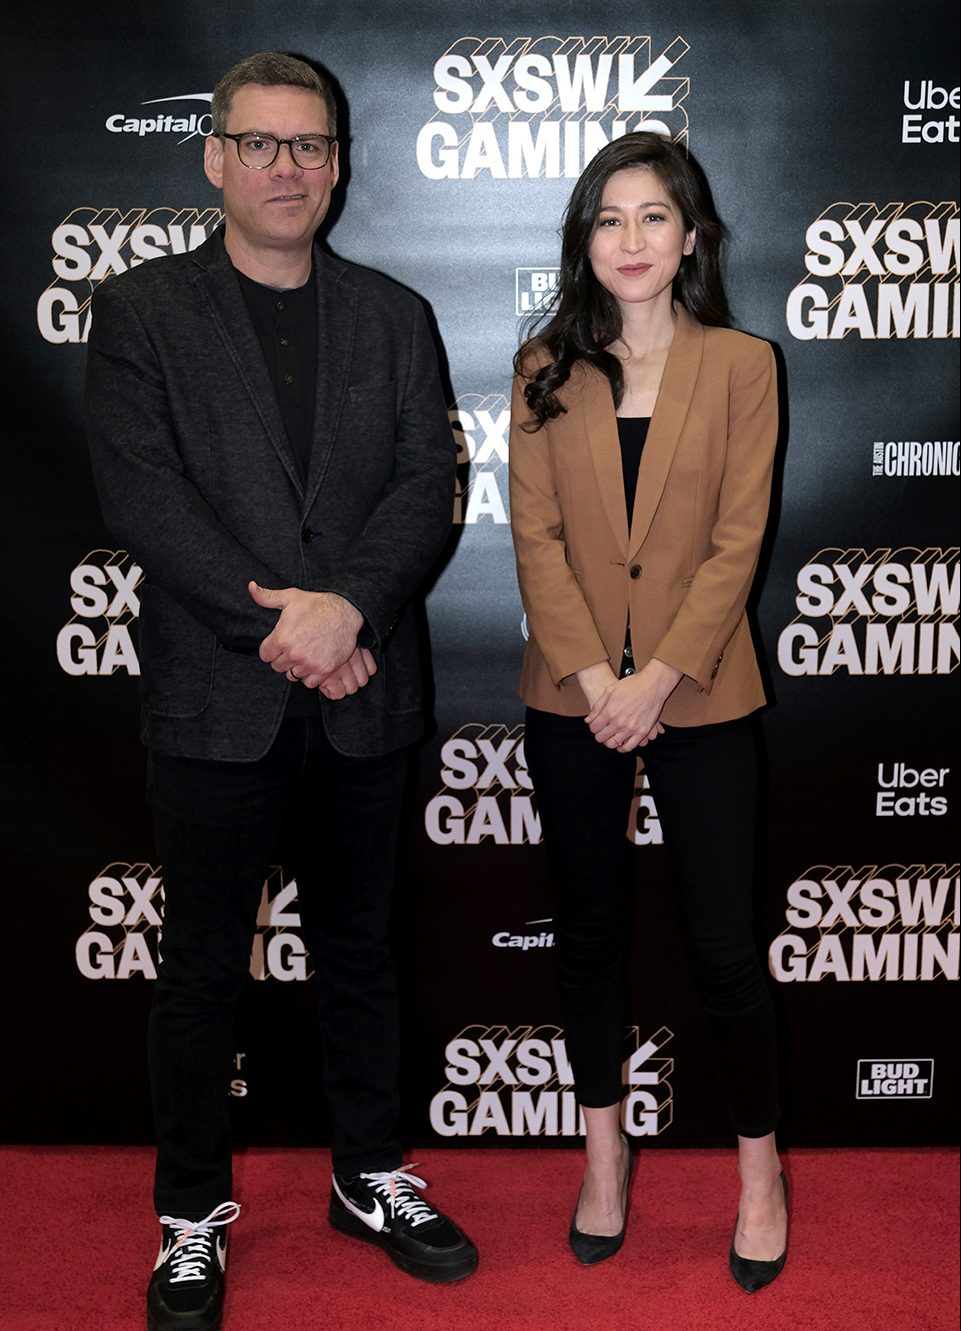 Nate Nanzer and Mina Kimes at The Evolution of the Overwatch League Featured Session. Photo by Hubert Vestil/Getty Images for SXSW